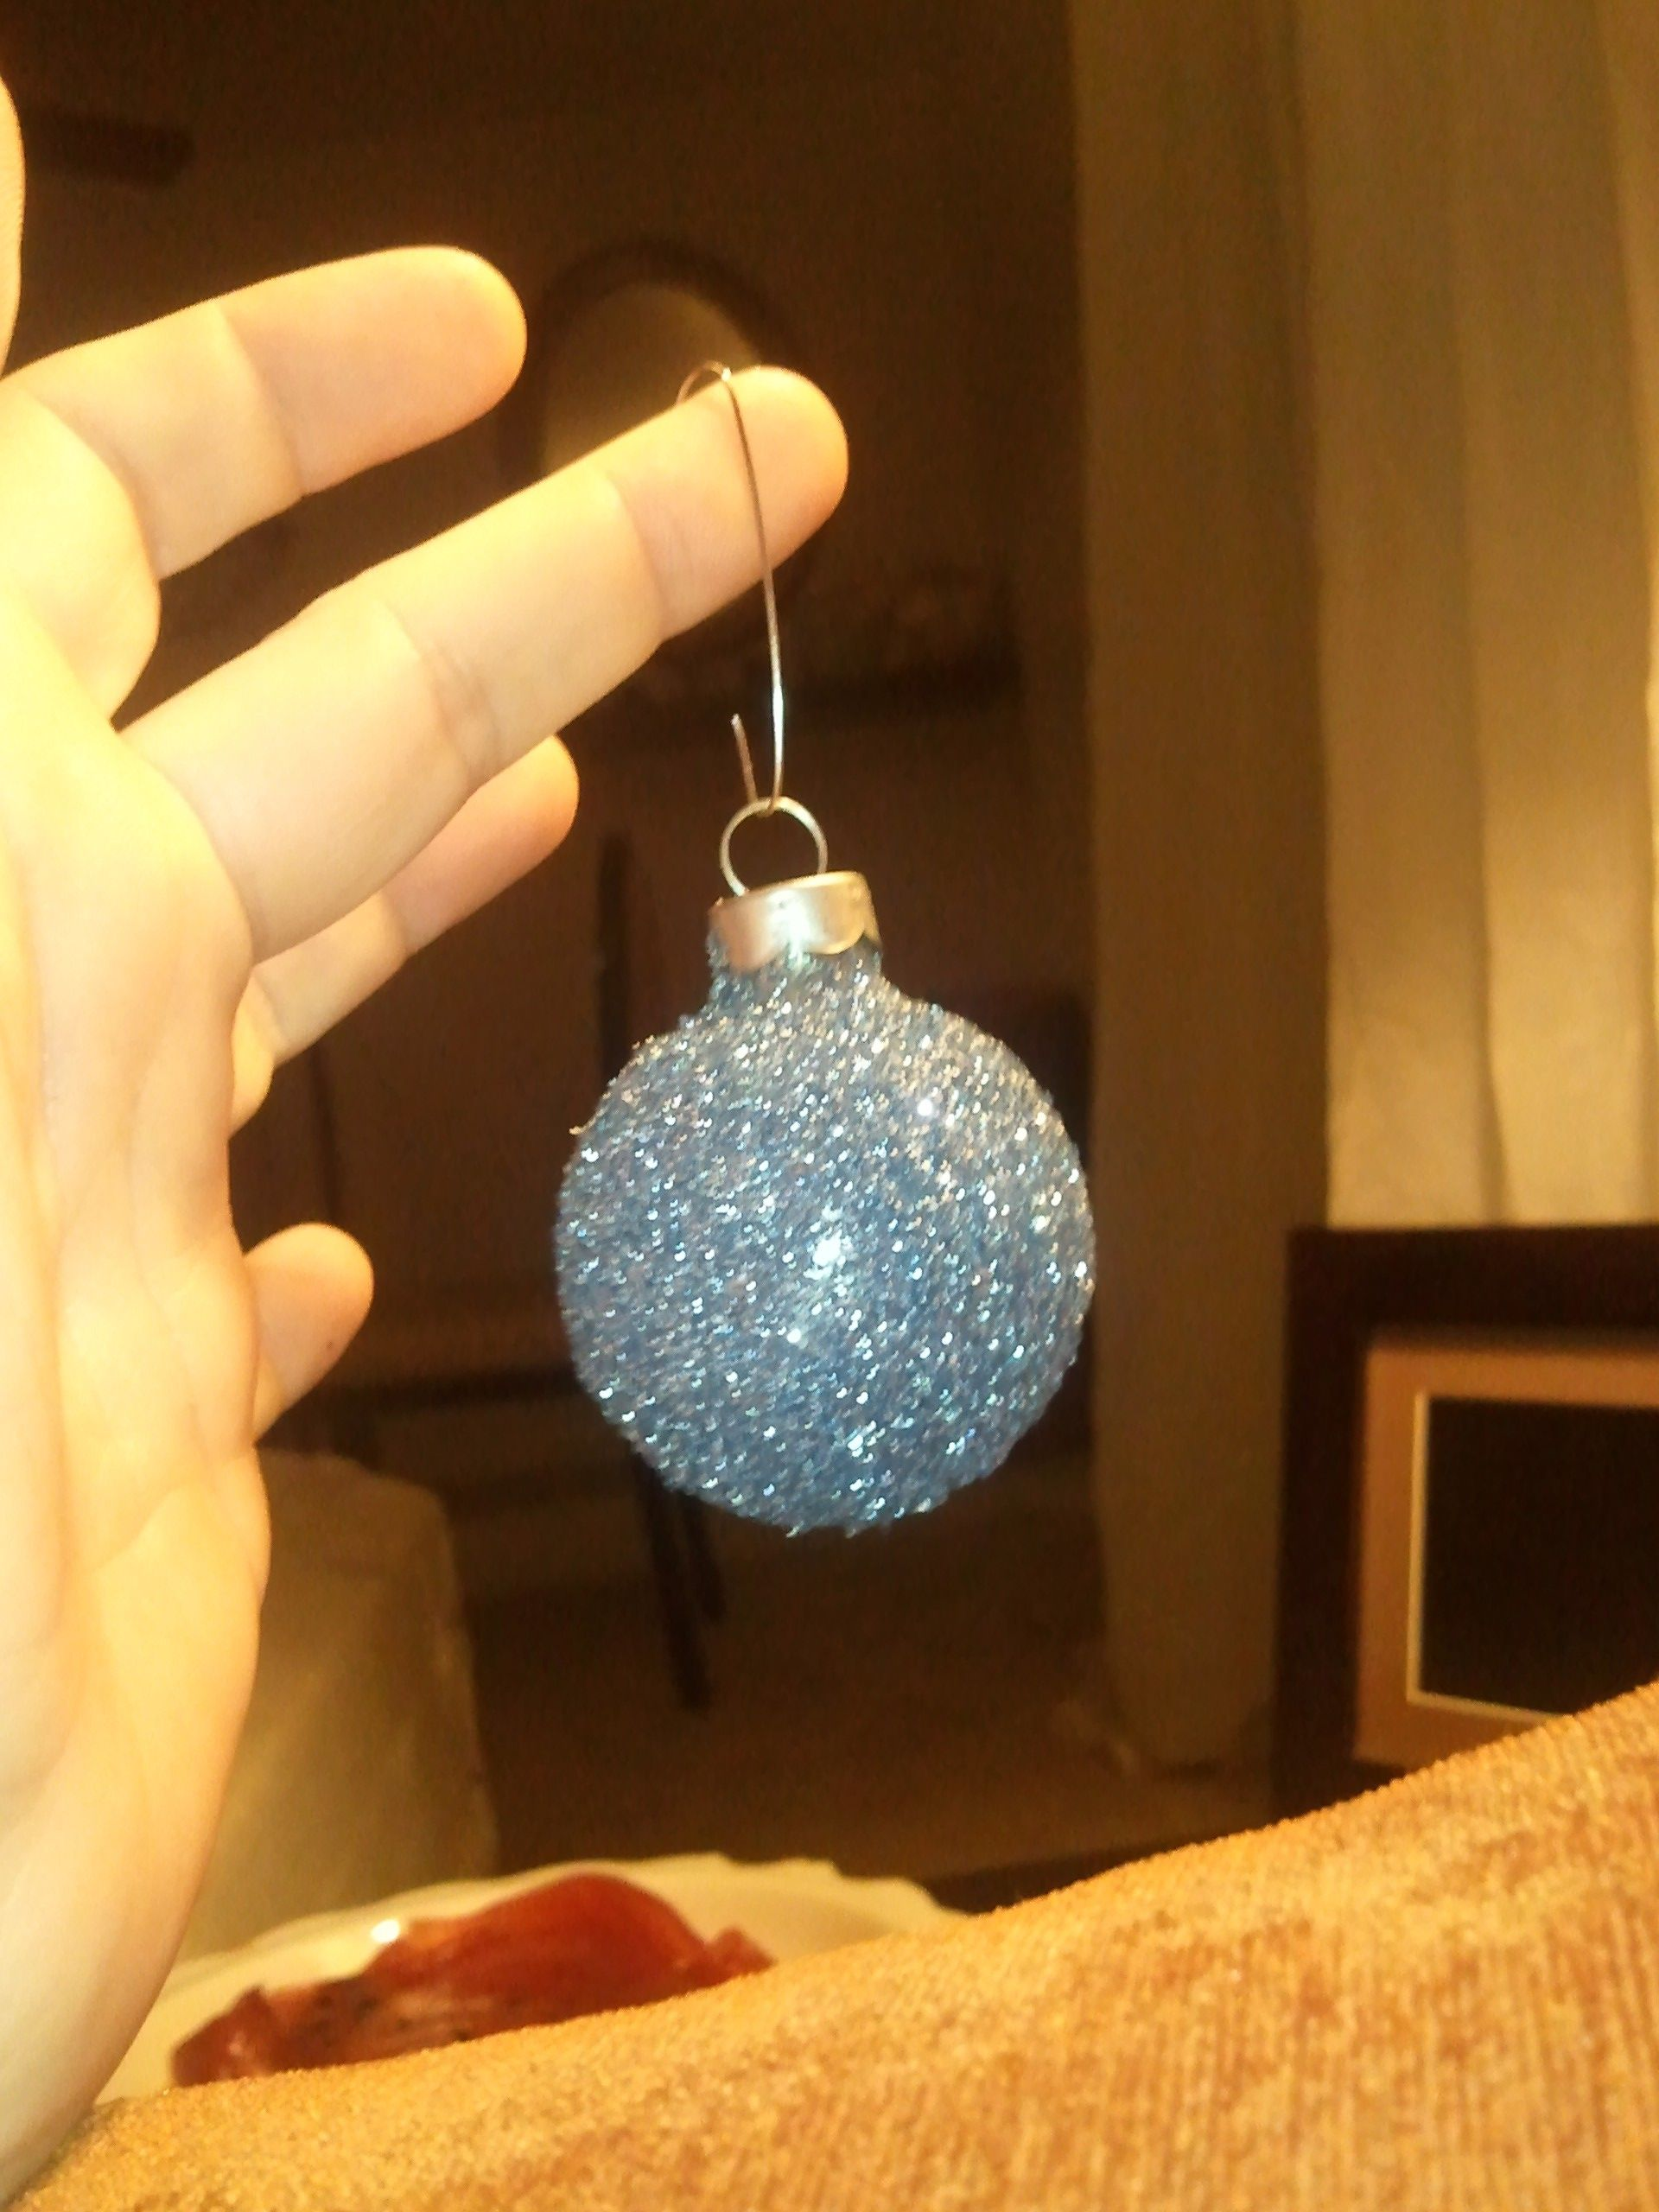 glittered ball ornaments. made by sprinkling glitter on